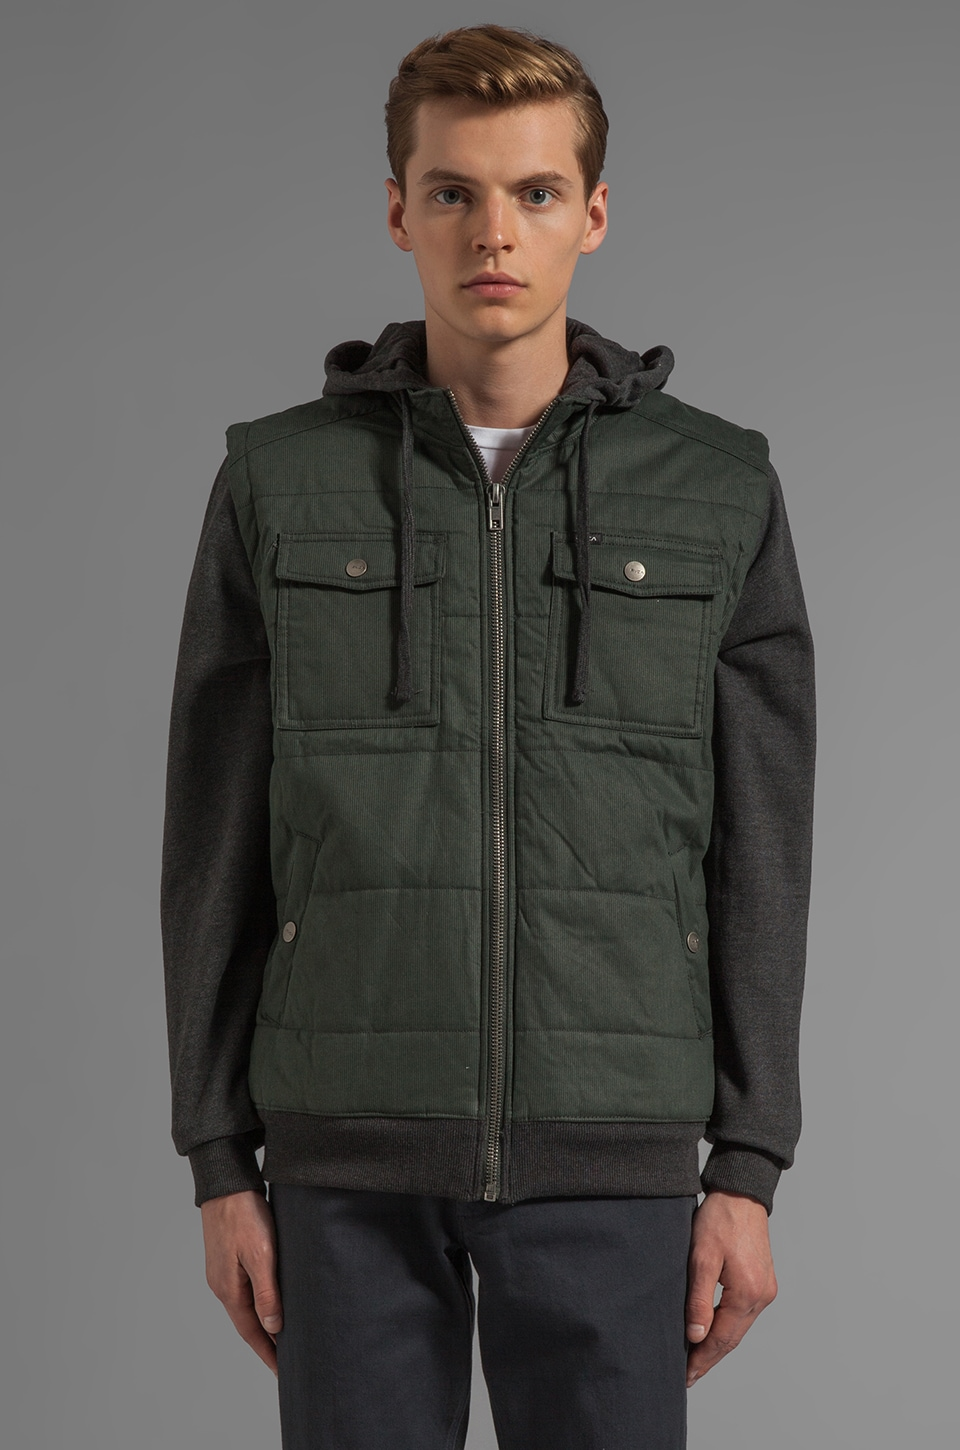 RVCA Puffer Bedford Jacket in Dark Charcoal